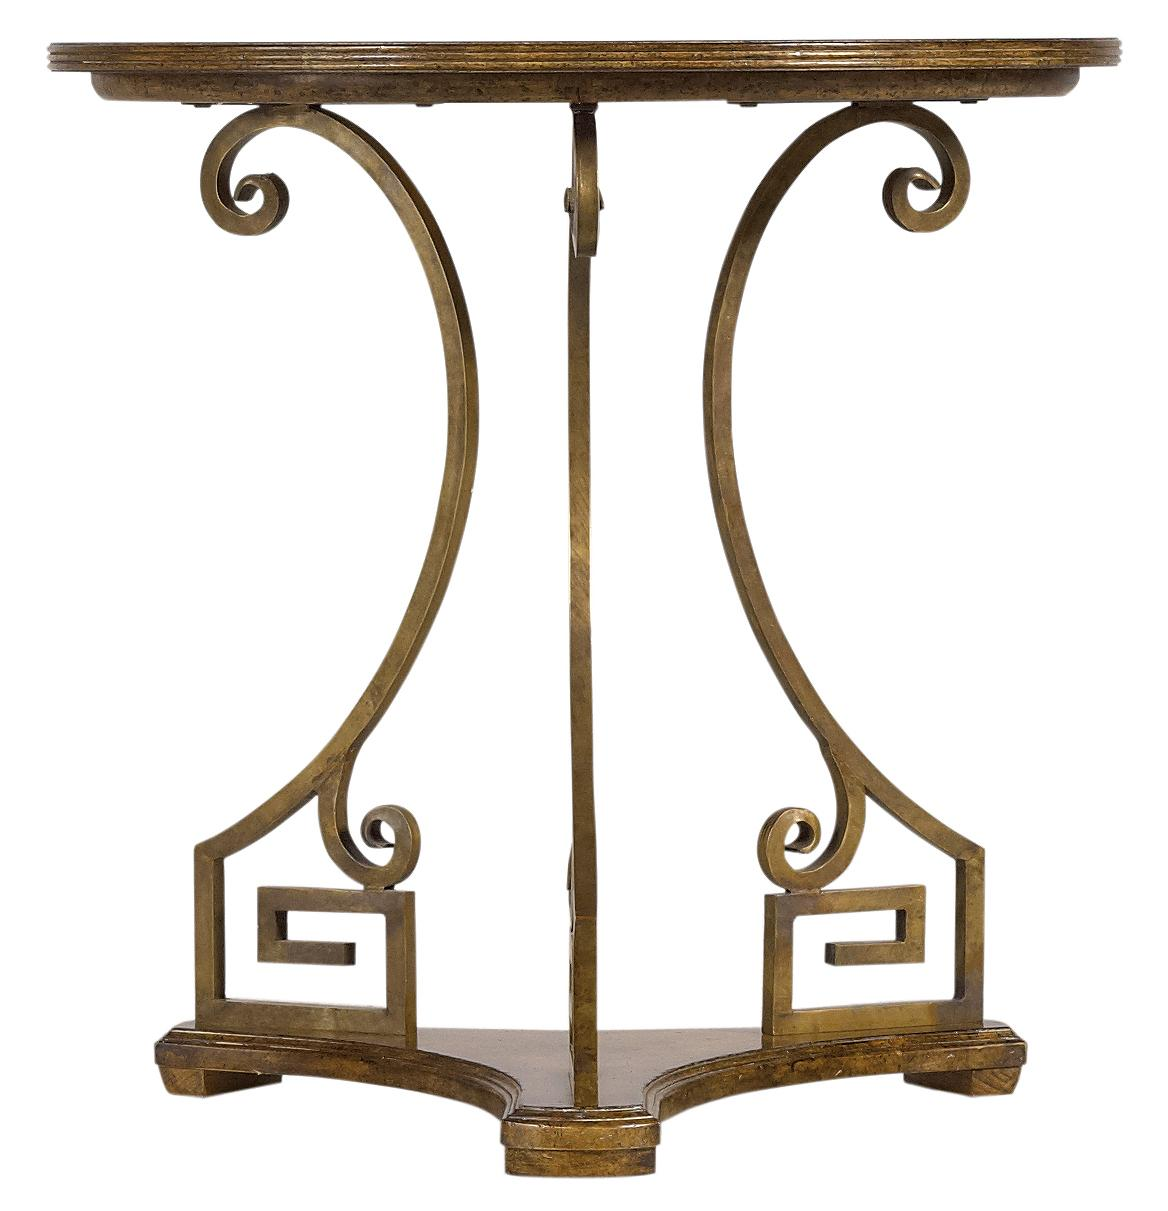 Stanley Furniture Arrondissement Clef Lamp Table - Item Number: 222-65-14